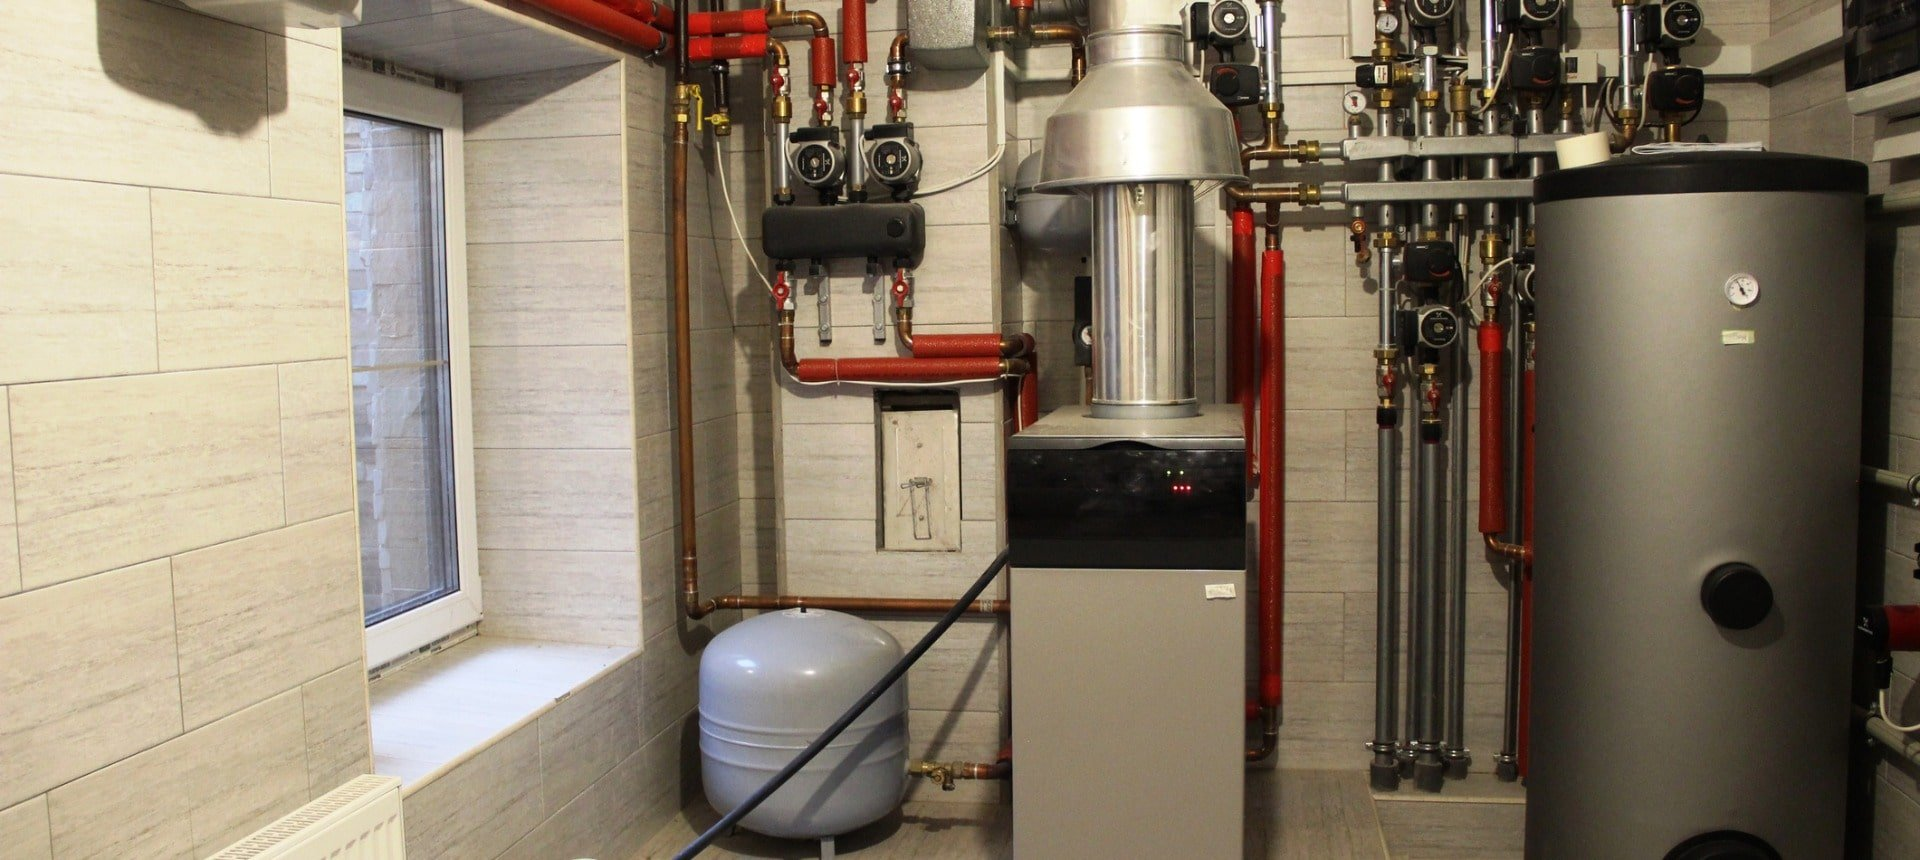 house-boiler-water-heater-expansion-tank-and-other-pipes-newmodern-picture-id1165699955-min